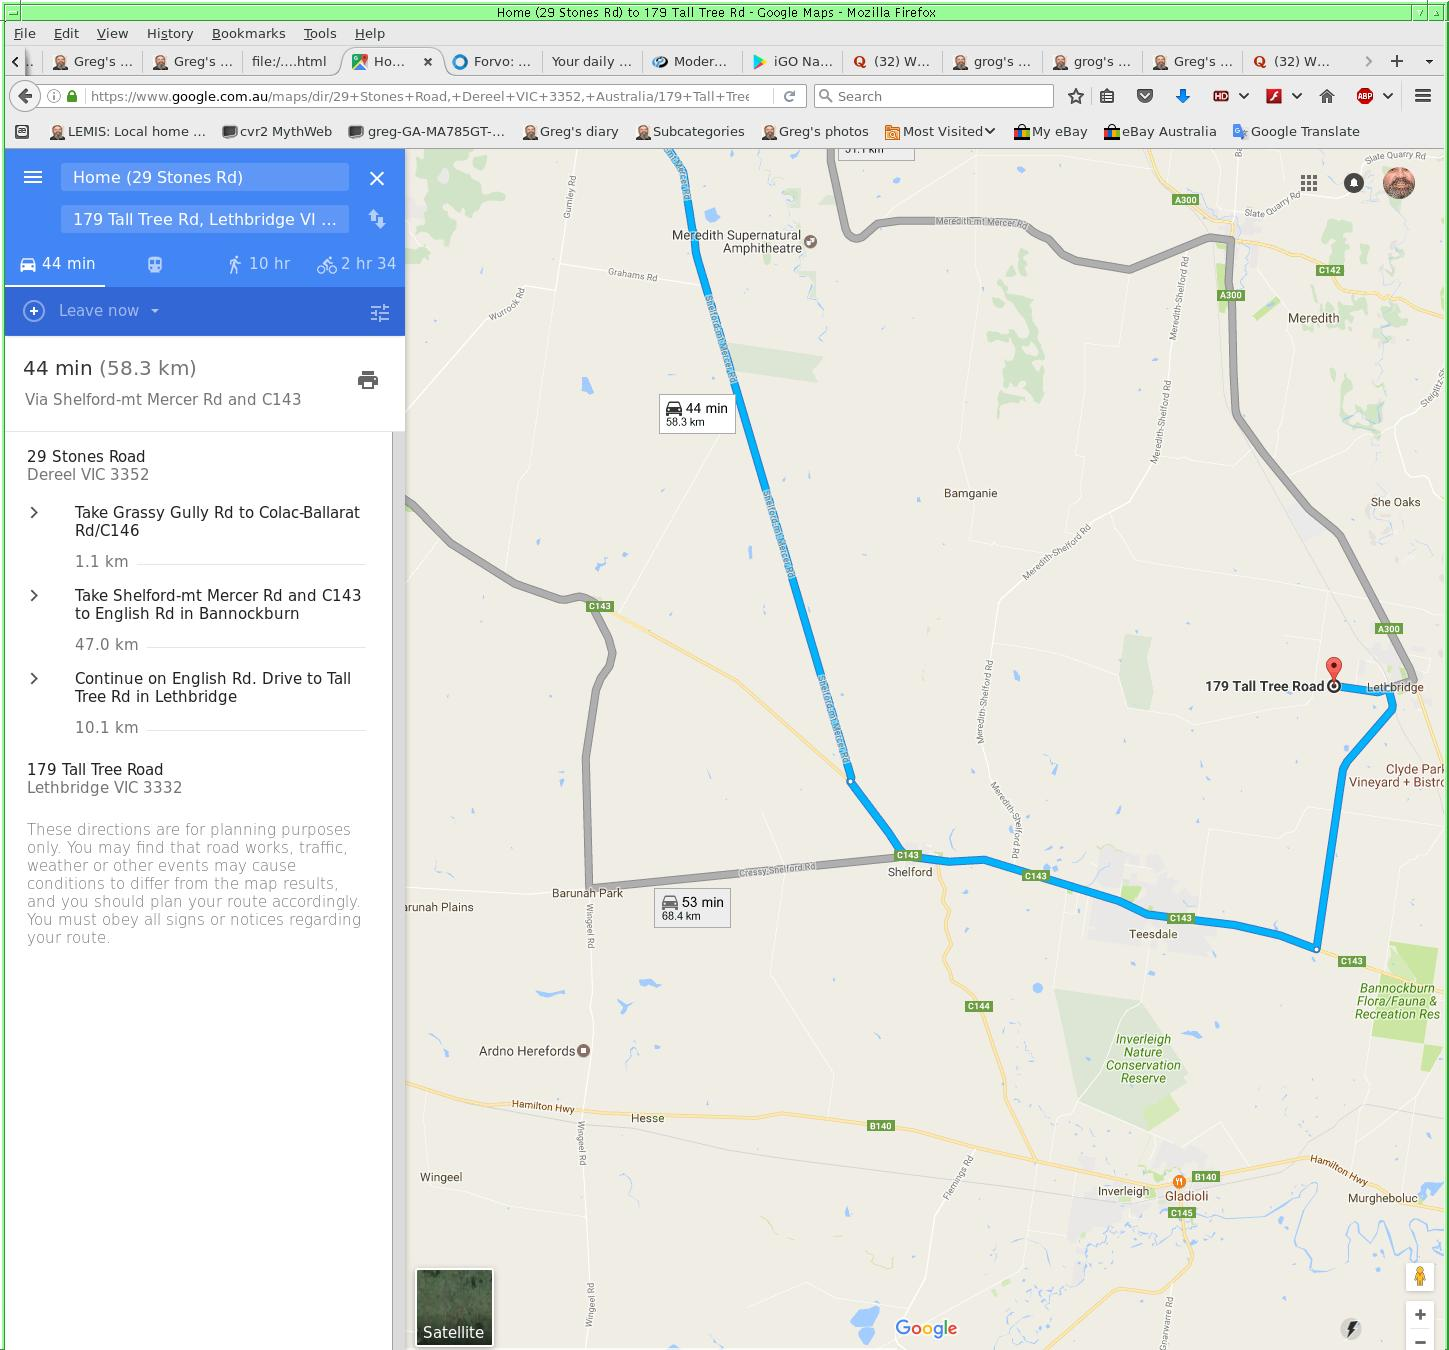 This should be Google-maps-3.png.  Is it missing?